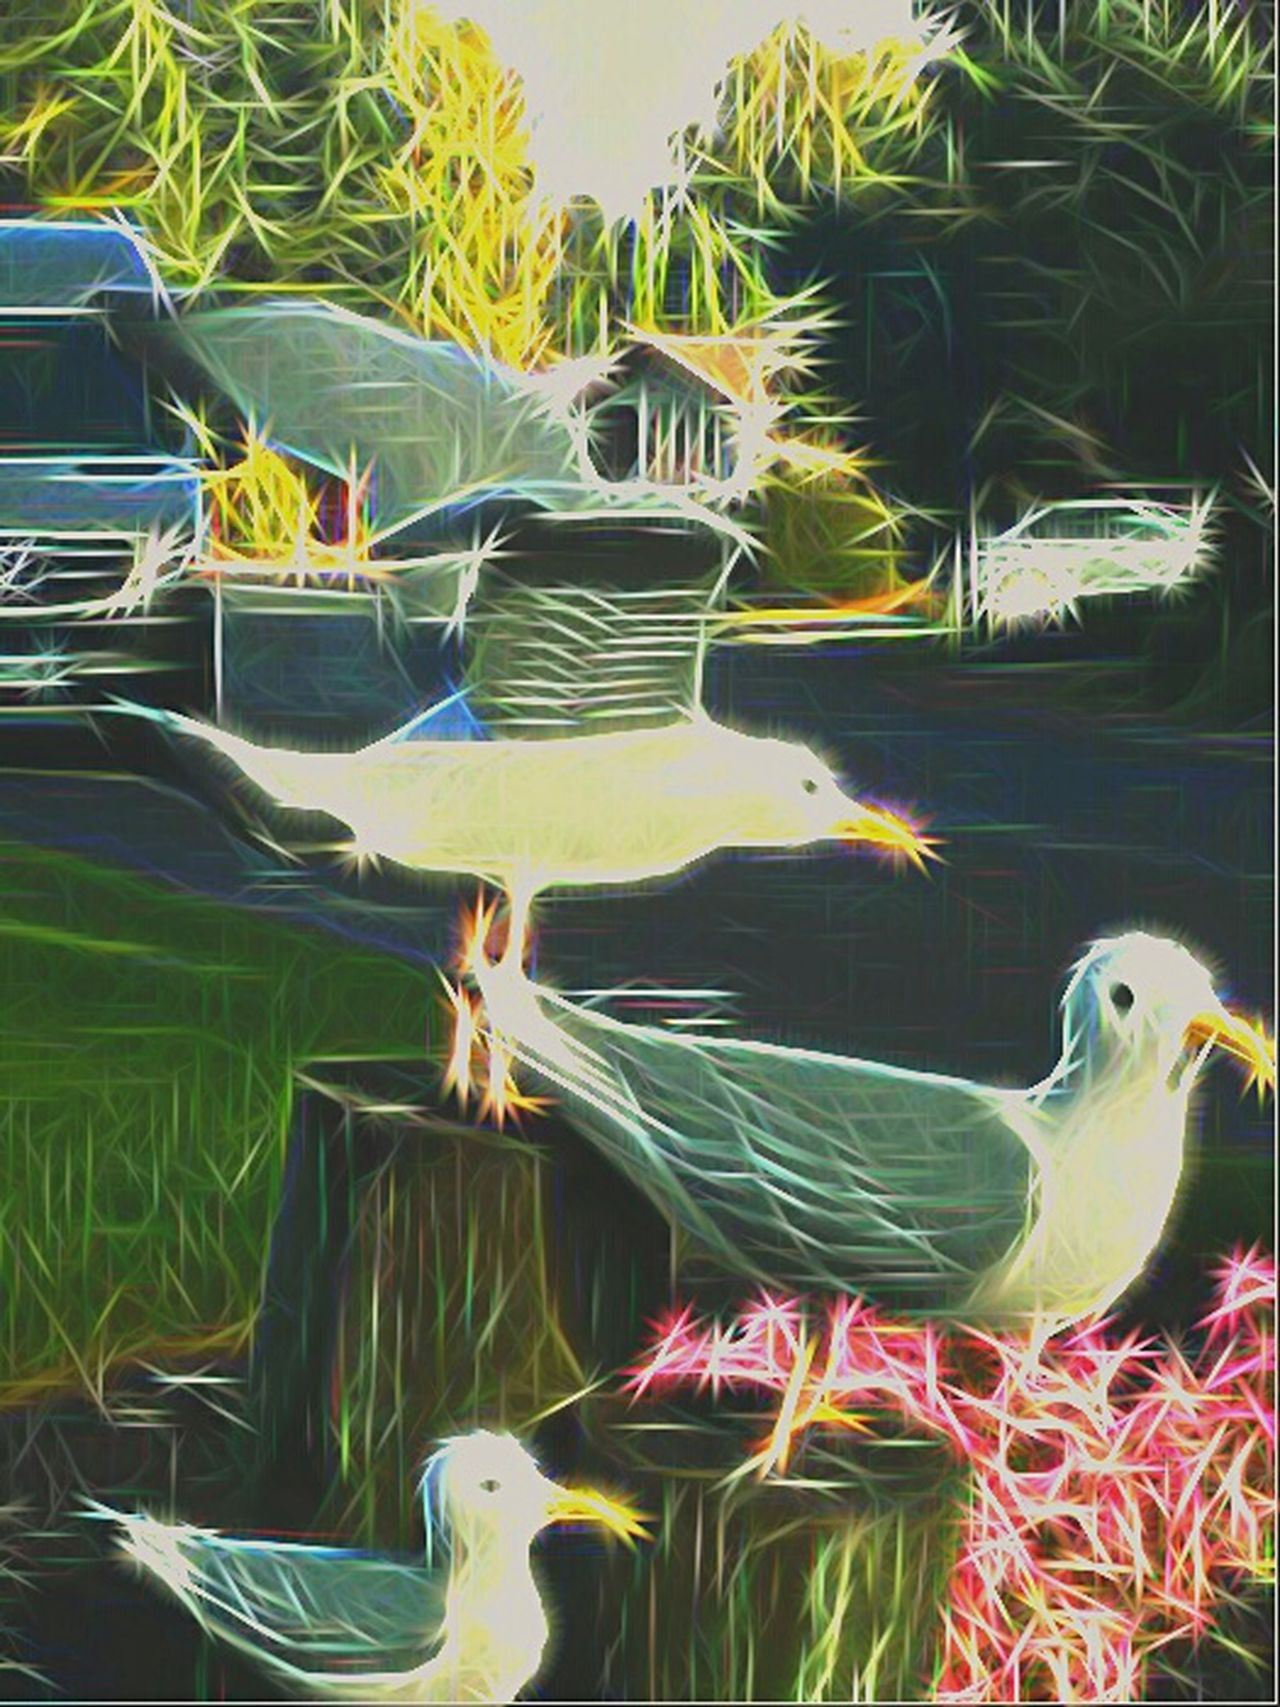 West Coast Seagulls Birds Of EyeEm  Birds_collection Animal Themes Beautiful Nature Yard Decorations Oregonexplored Oregon Coast Coastal Birds Flight Taking Flight Not Real Check This Out Taking Photos Nature Photography Live In The Moment Oregon Unlimited Sparkles Shine Bright Like A Diamond  Wings & Things Plastic Birds Yard Art West Coast Garden Art West Side Dha Best Side